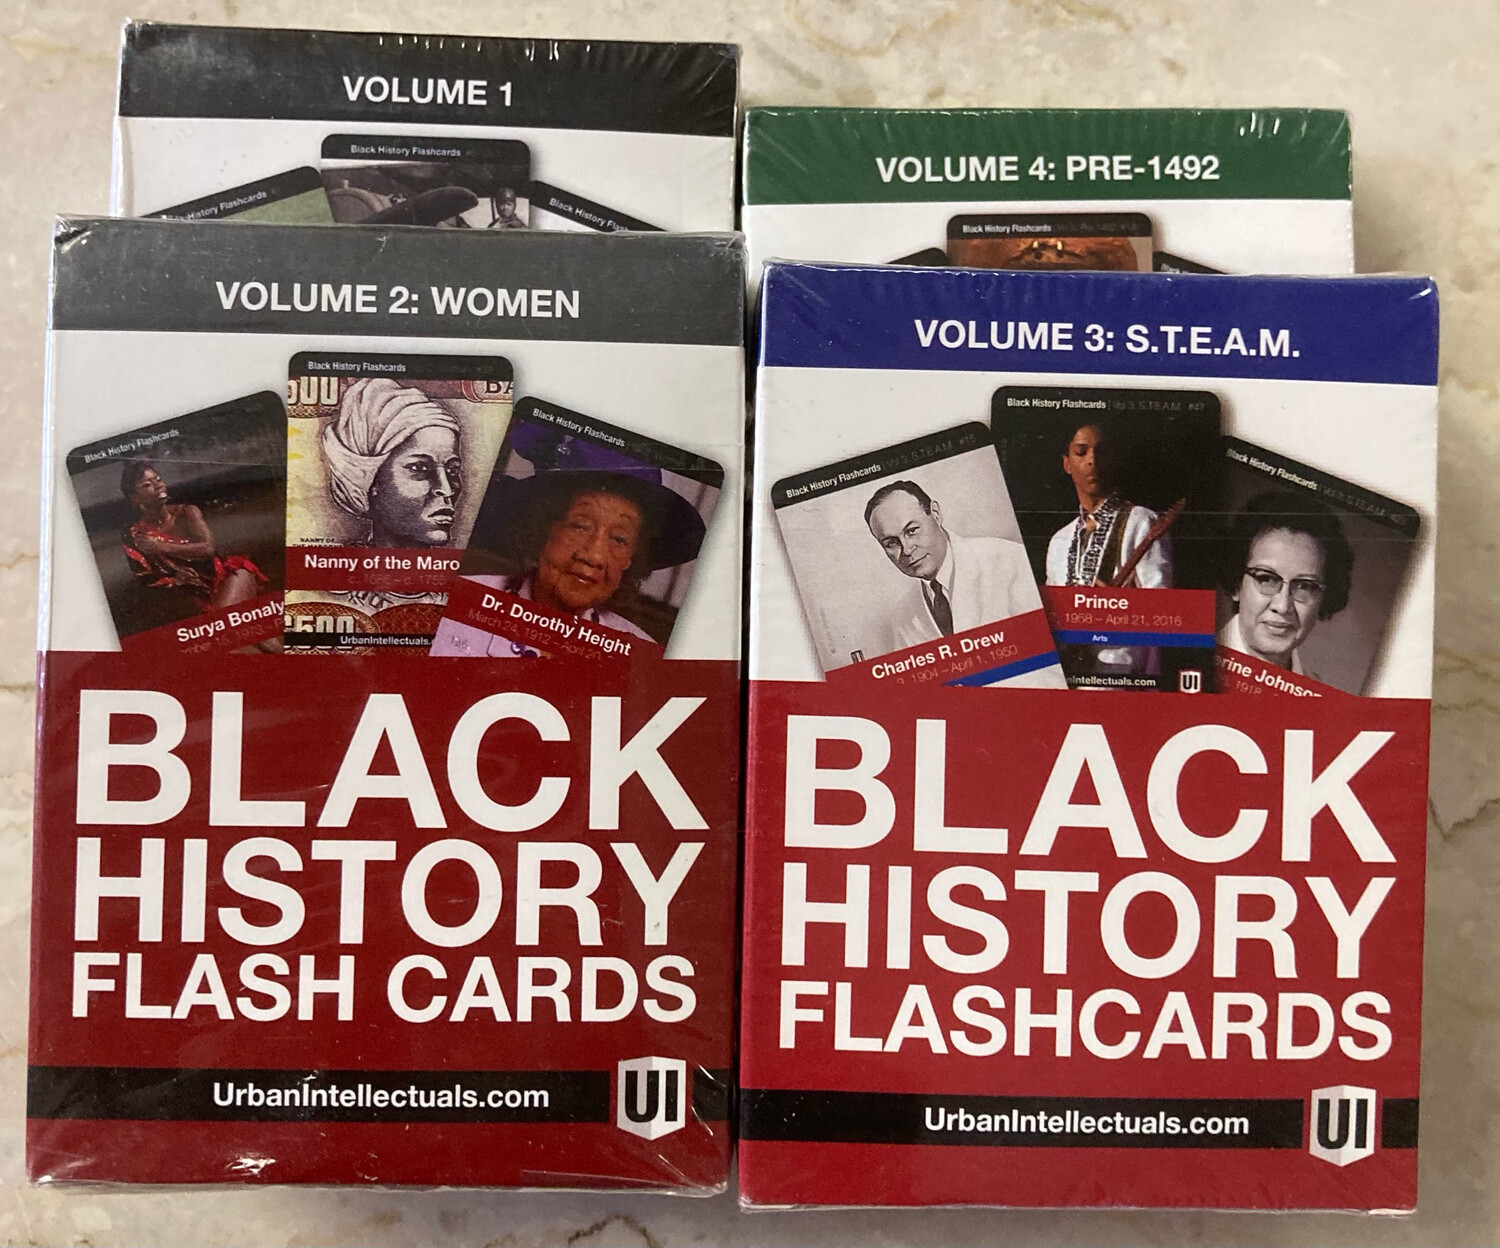 Black History Flashcards - Volumes 1-4